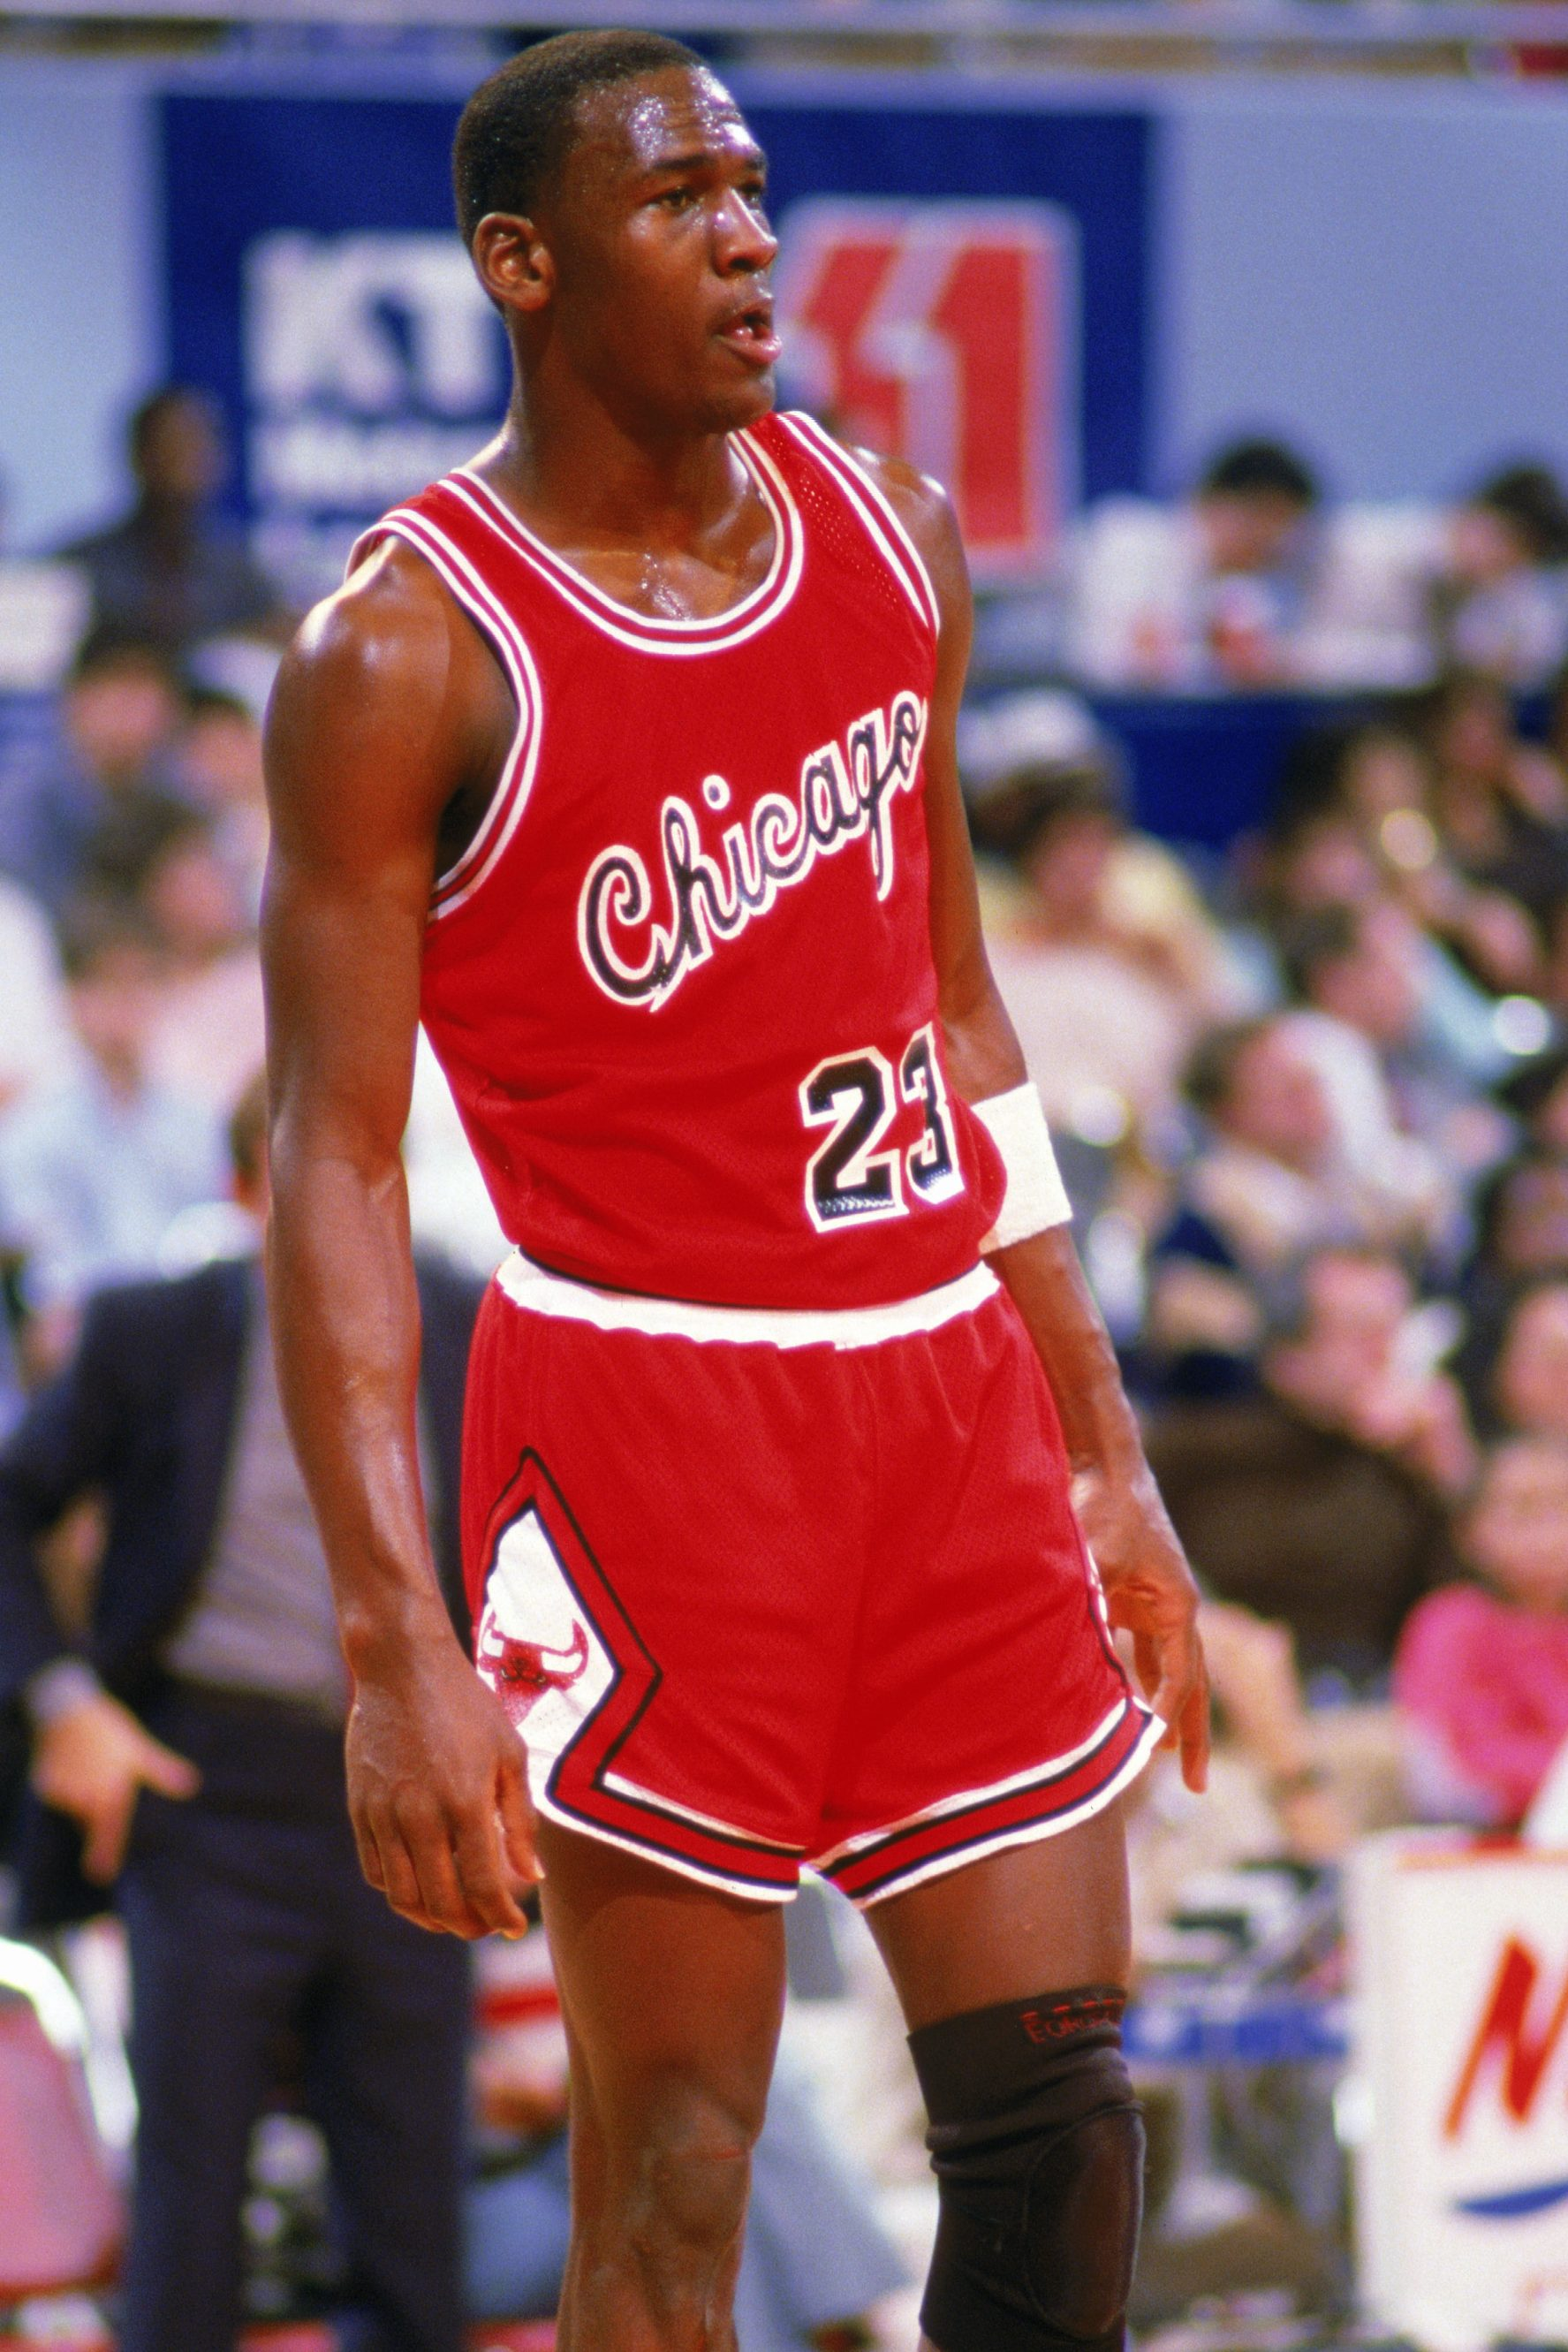 27d23c644fd0e0 Michael Jordan (No. 23) of the Chicago Bulls stands on the court moves the  ball at the perimeter against the Los Angeles Clippers at the Sports Arena  in Los ...